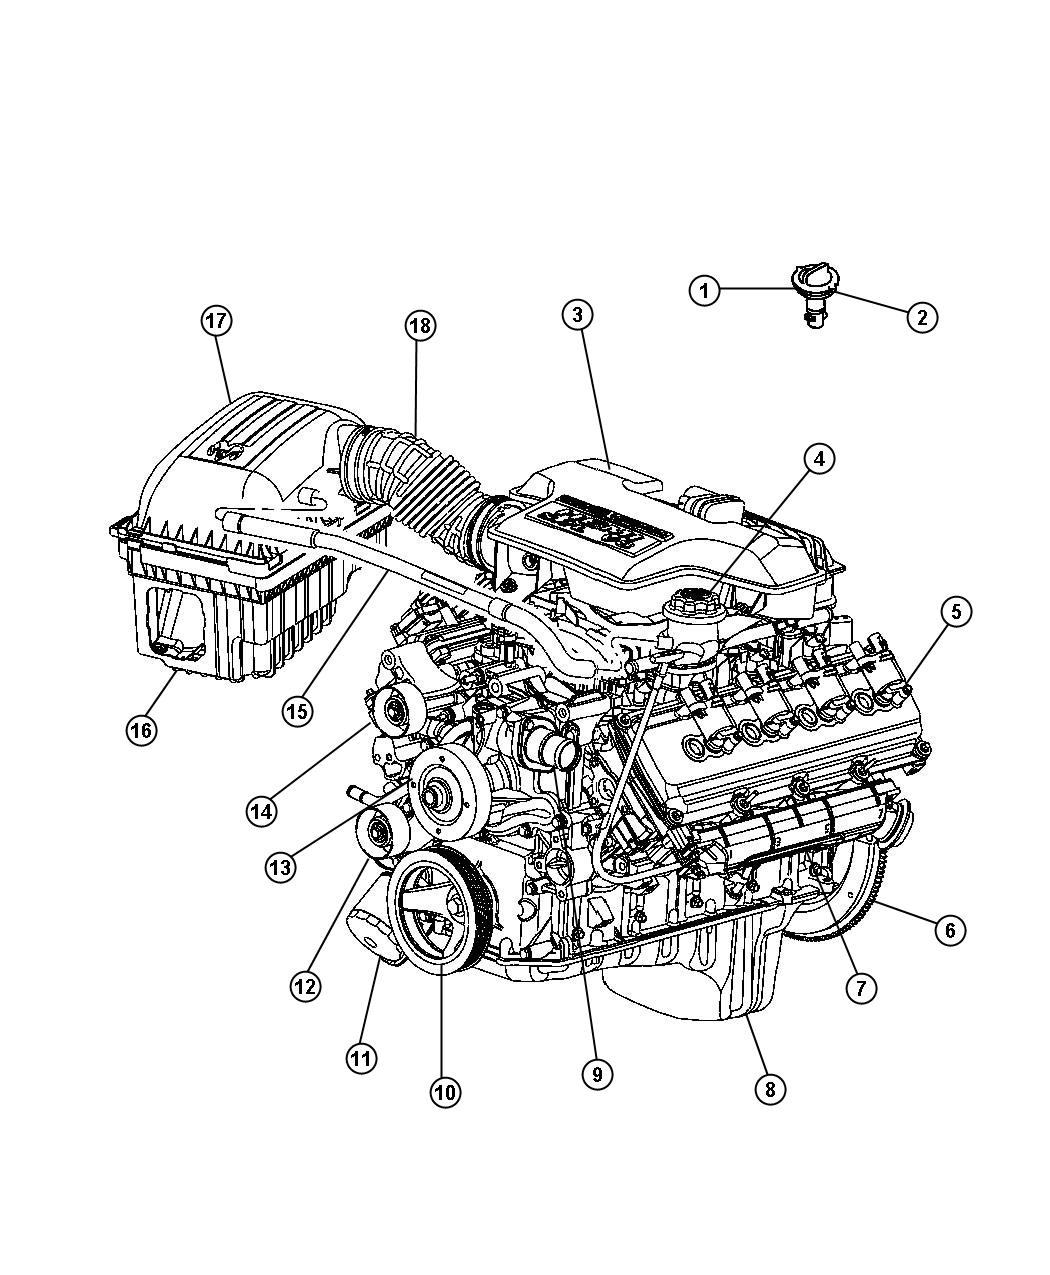 Dodge Ram 2500 Engine Diagram on Chevy Cobalt Fuse Box Location